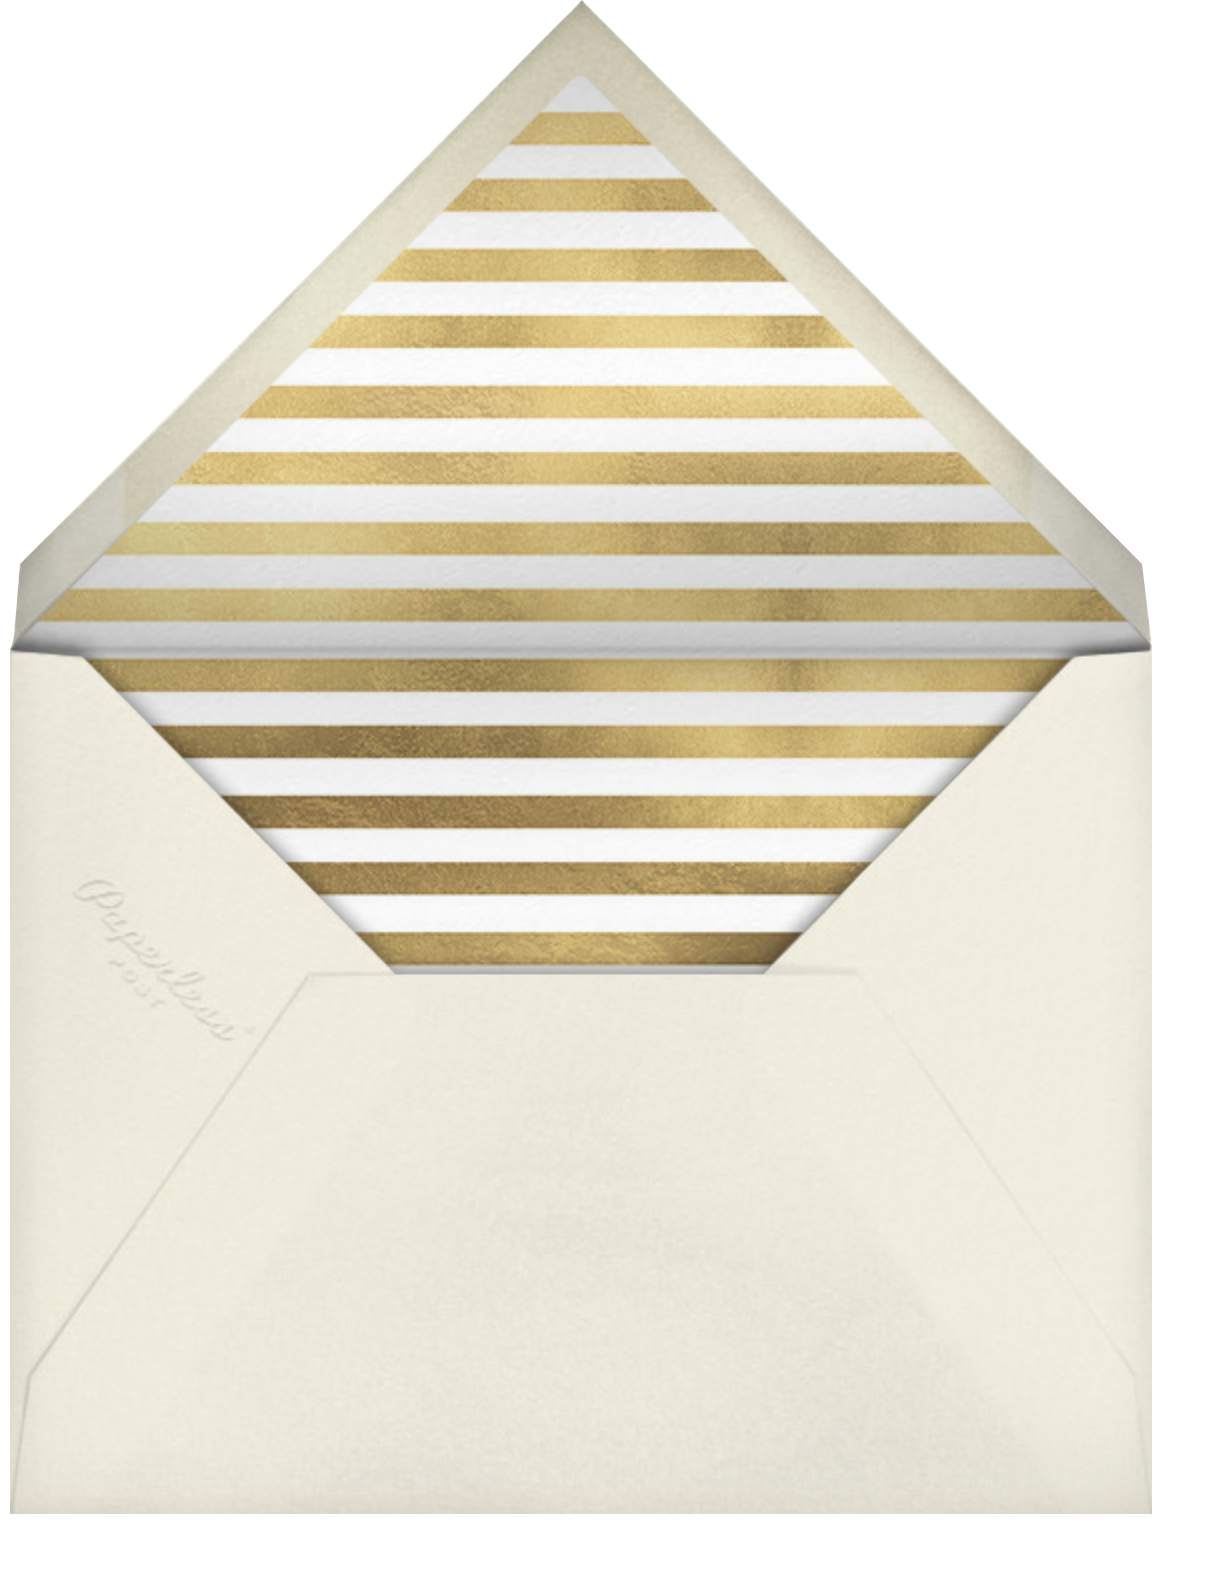 Confetti New Year (Greeting) - Gold/Cream - kate spade new york - New Year - envelope back